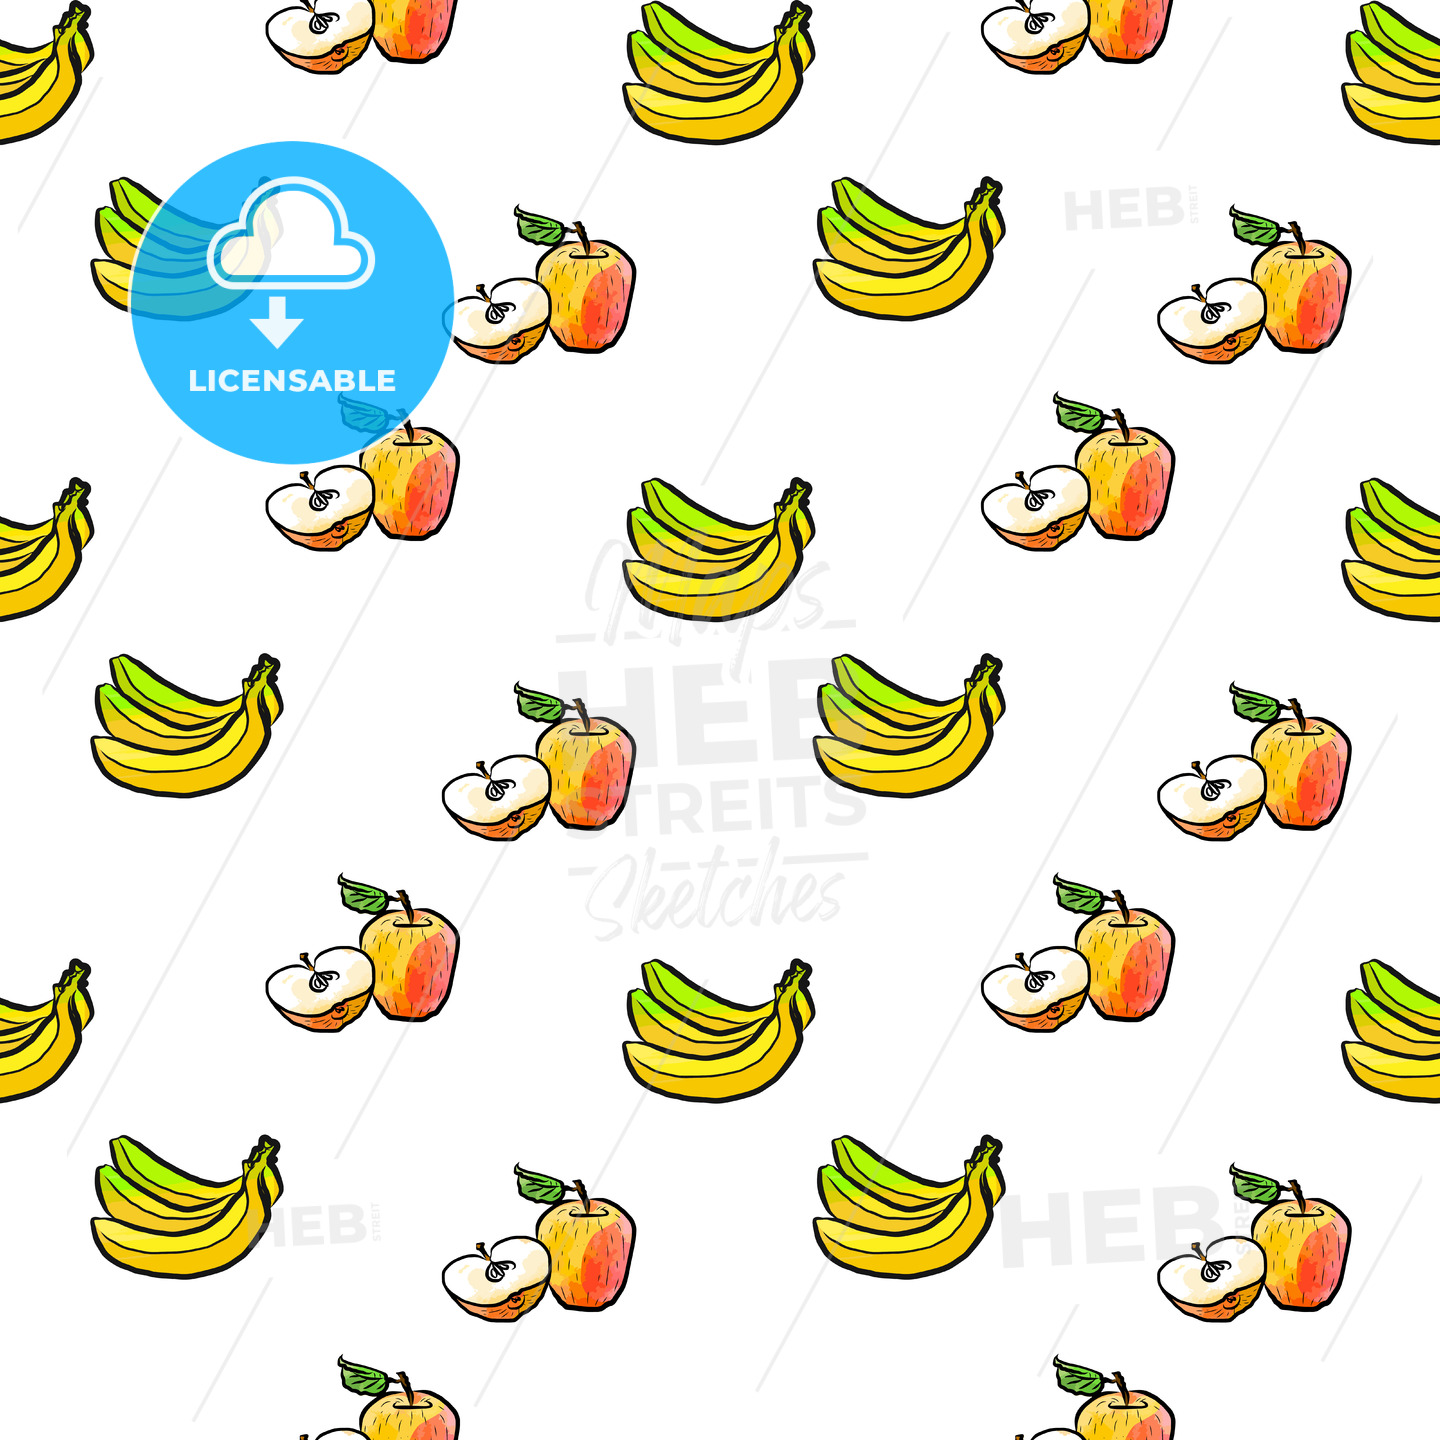 seamless pattern of bananas and apples - HEBSTREITS